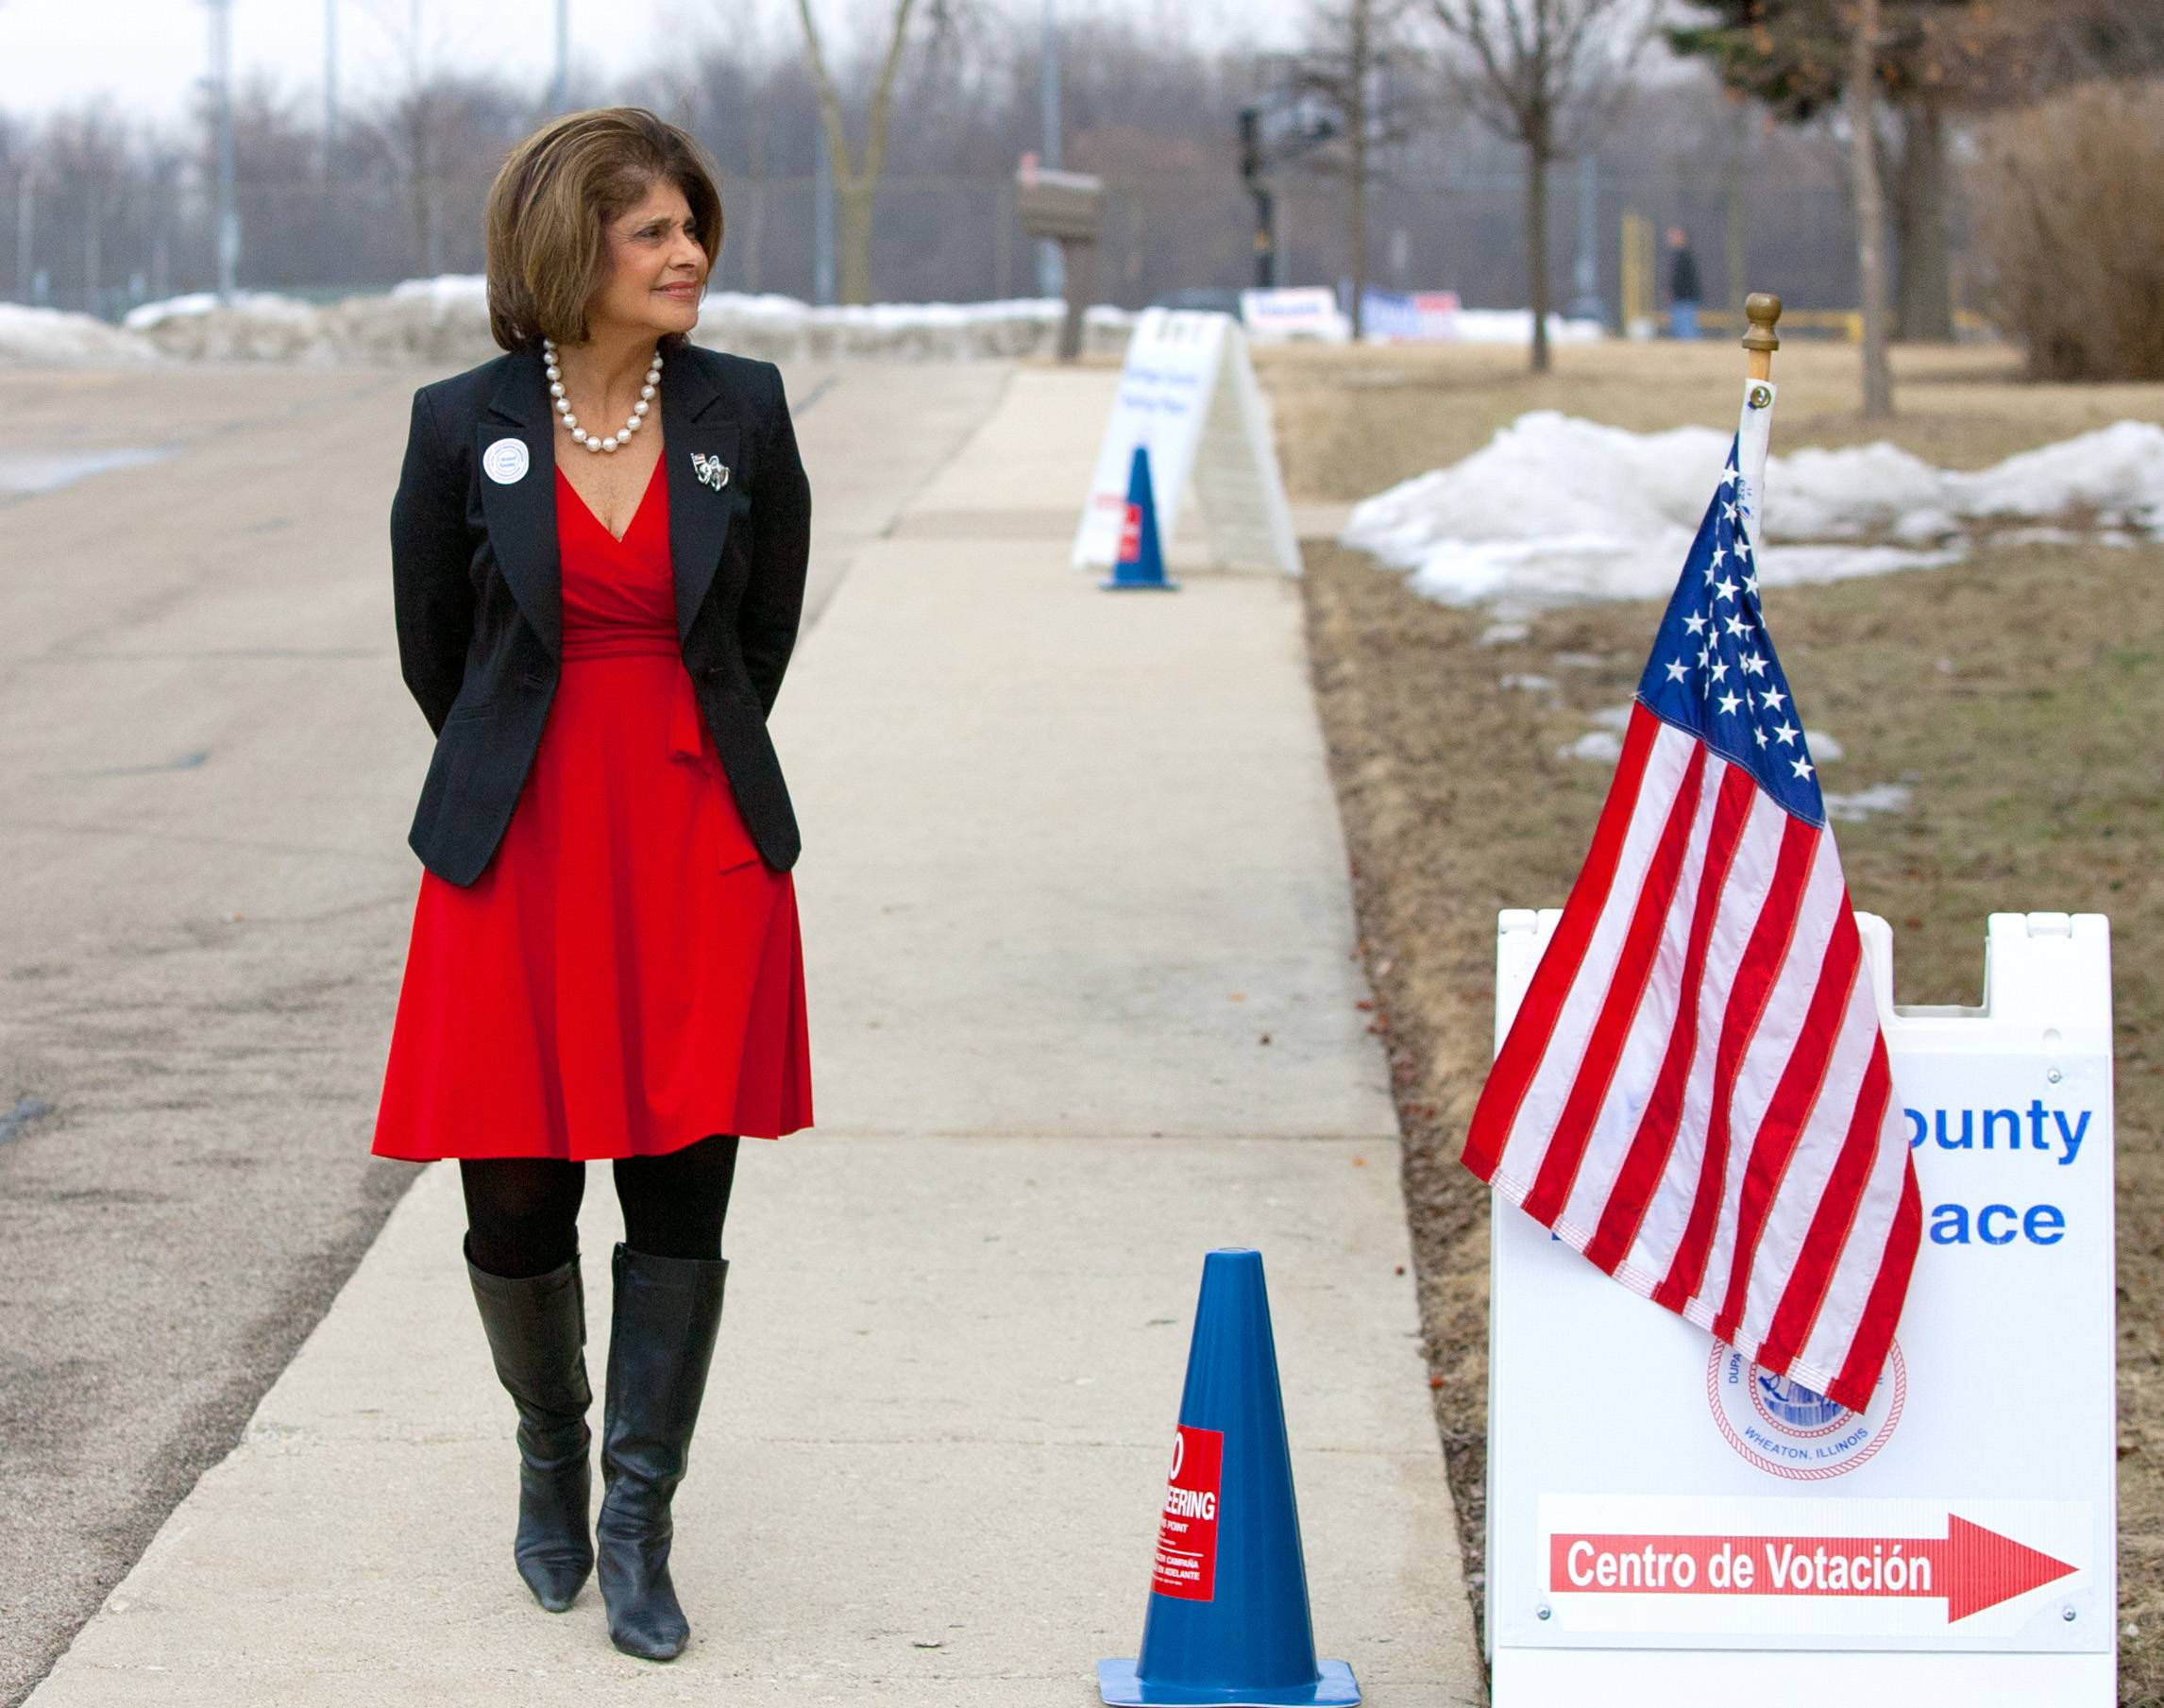 Rep. Sandra Pihos of the 48th House district voted at the Village Green Baptist Church in Glen Ellyn.